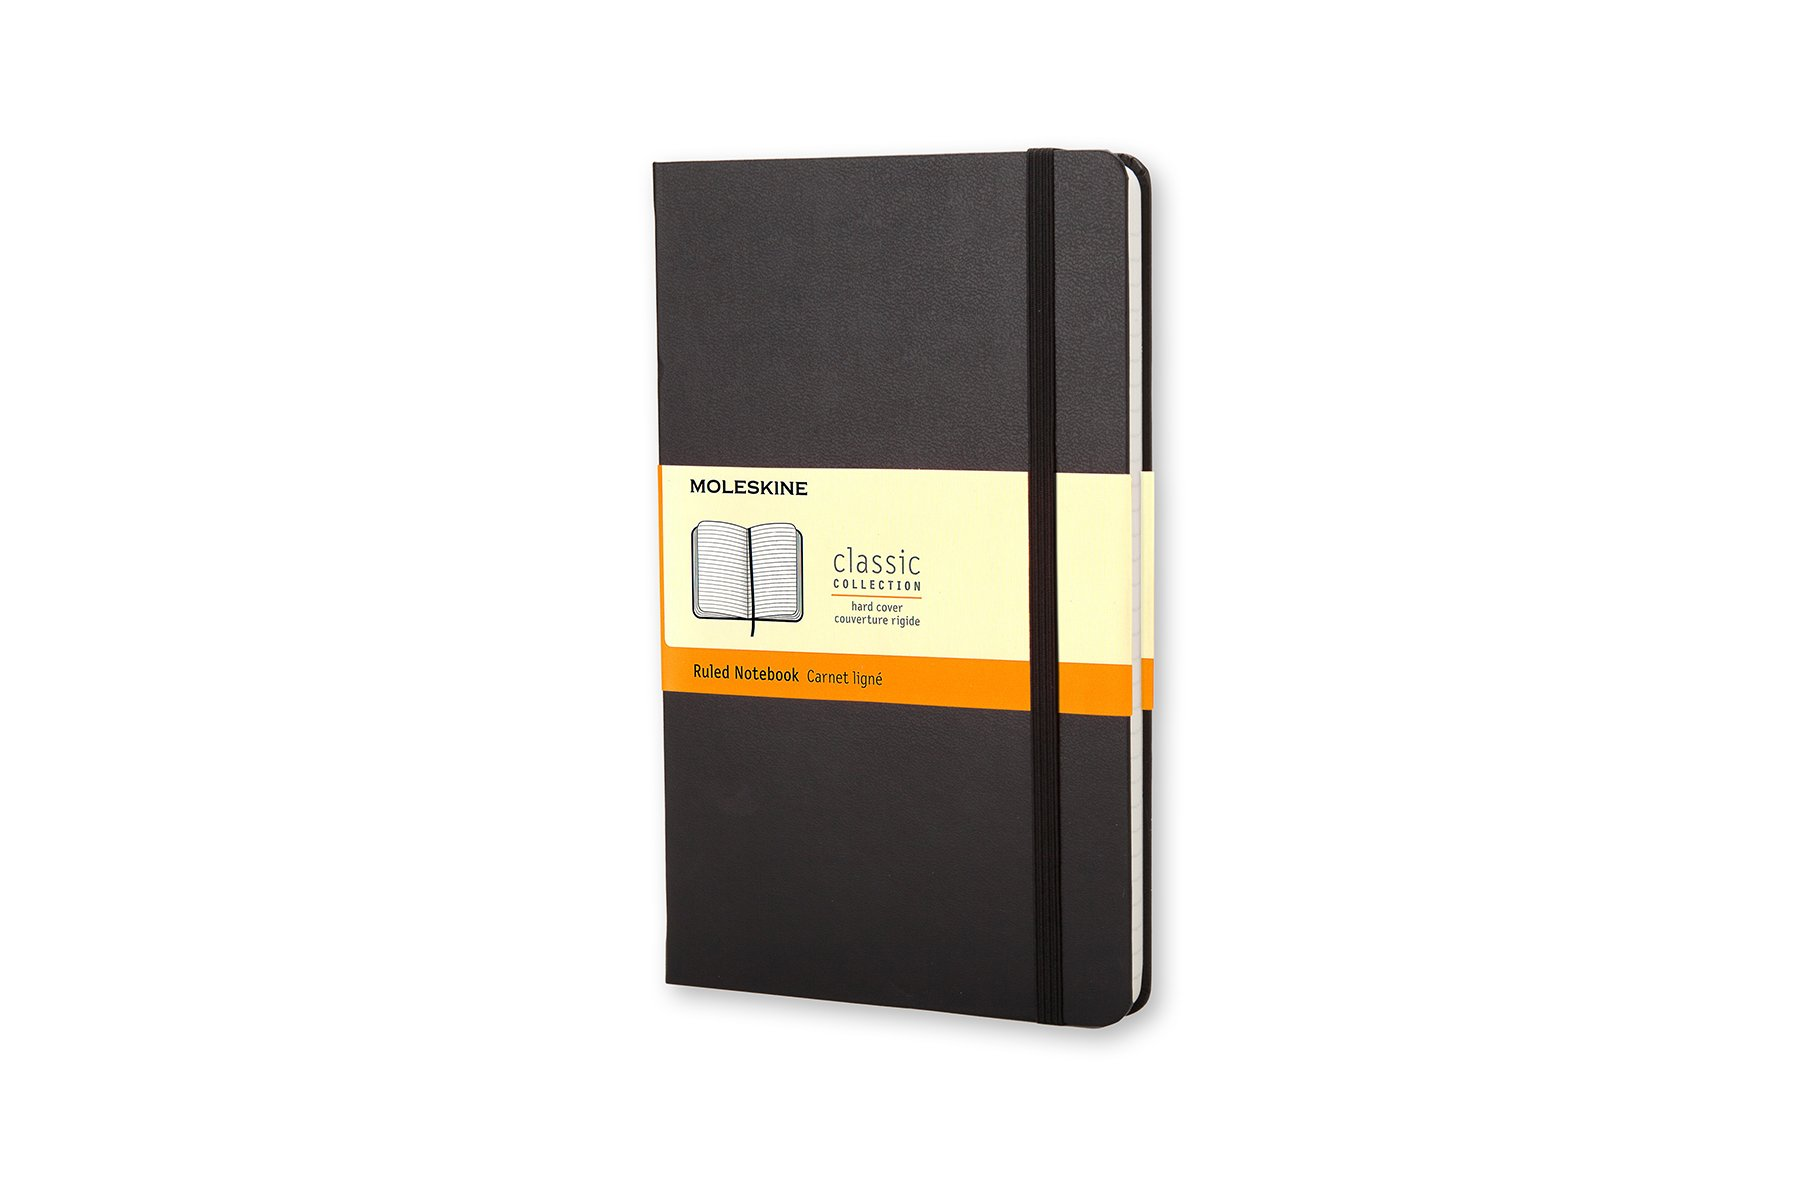 Moleskine Classic Hard Cover Notebook, Ruled, Pocket Size...